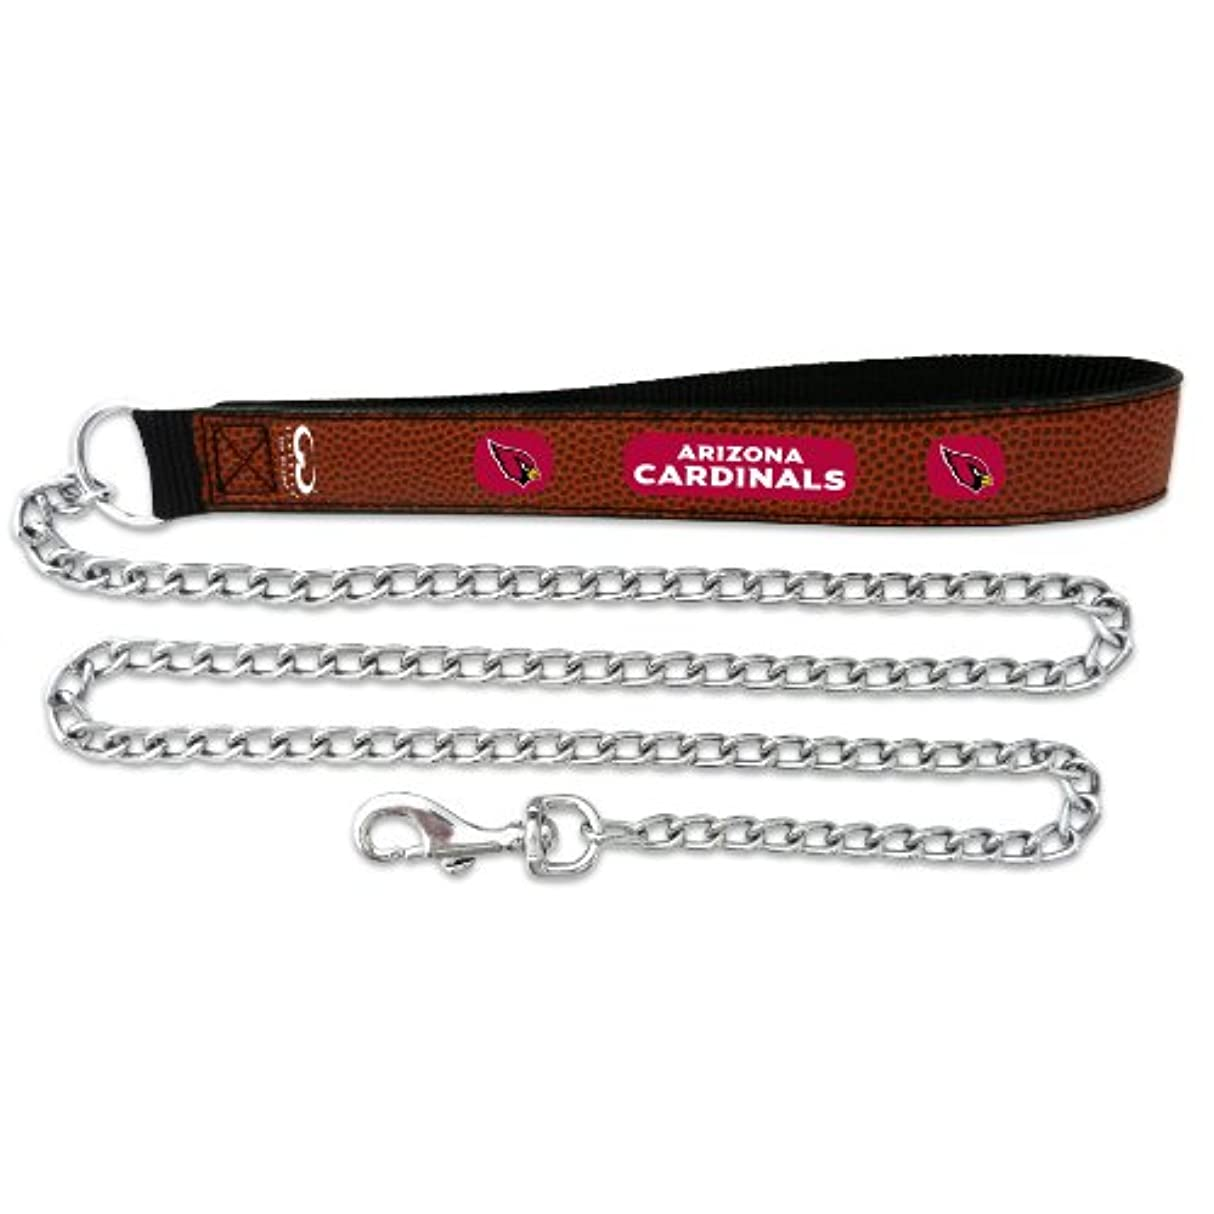 広告主ケーキ経済的Arizona Cardinals Football Leather 2.5mm Chain Leash - M